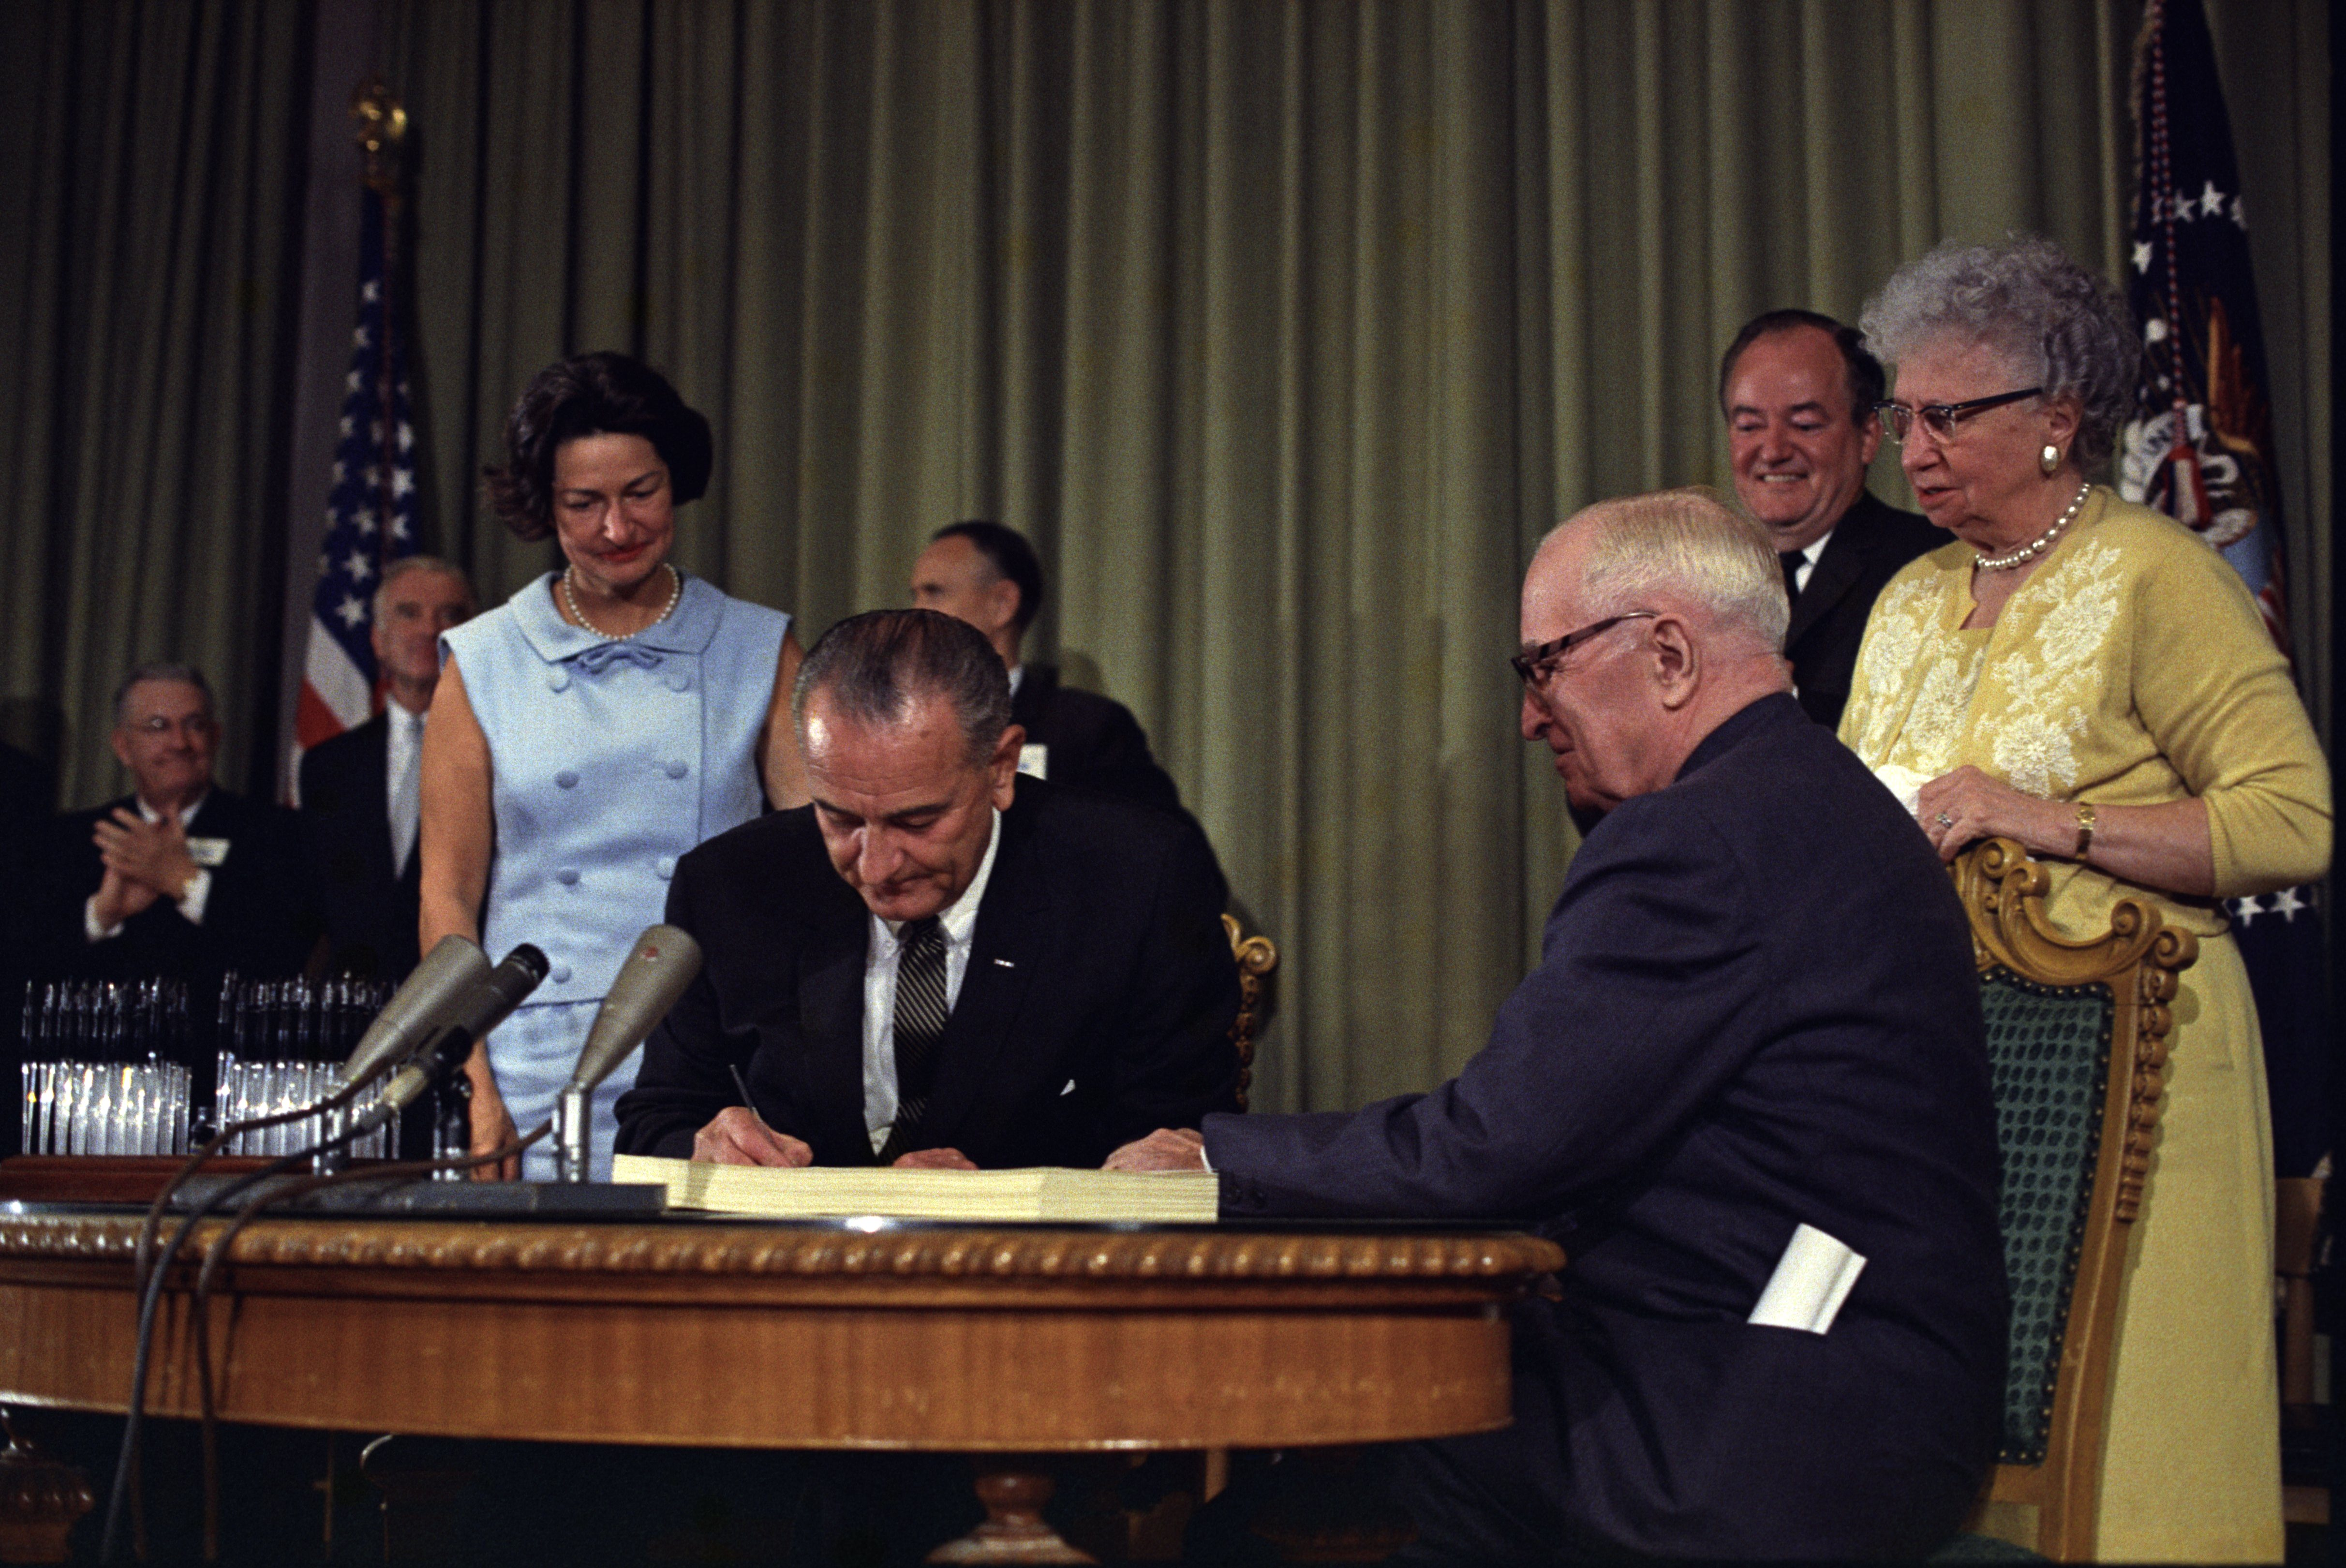 U.S. President Lyndon B. Johnson signing the Medicare Bill at the Harry S. Truman Library in Independence, Missouri, on July 30, 1965. Former president Harry S. Truman is seated at the table with President Johnson. The following are in the background (from left to right): Senator Edward V. Long, an unidentified man, Lady Bird Johnson, Senator Mike Mansfield, Vice President Hubert Humphrey, and Bess Truman. Photo from the holdings of the National Archives and Records Administration, cataloged under the National Archives Identifier (NAID) 596403.